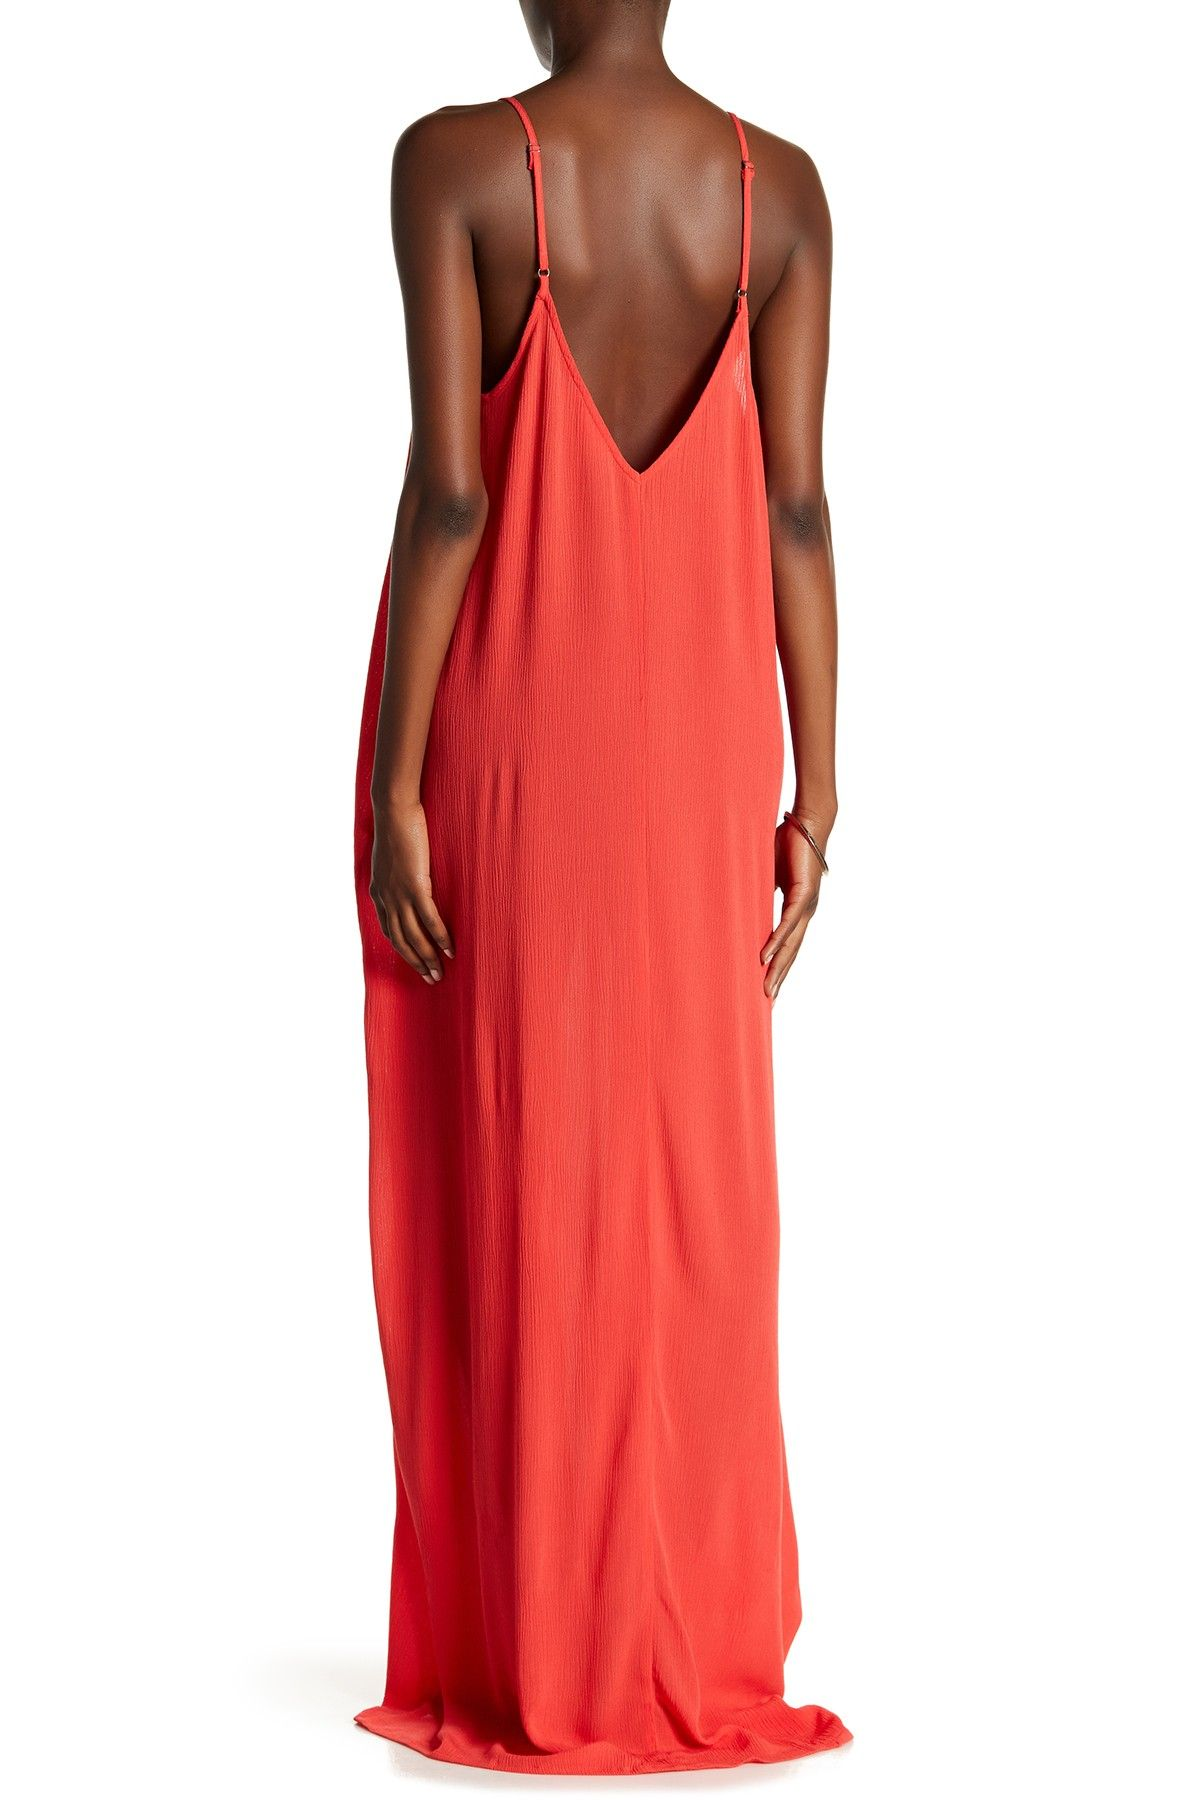 cdd575b3c4c Love Stitch - V-Neck Sleeveless Gauze Maxi Dress is now 66% off. Free  Shipping on orders over $100.